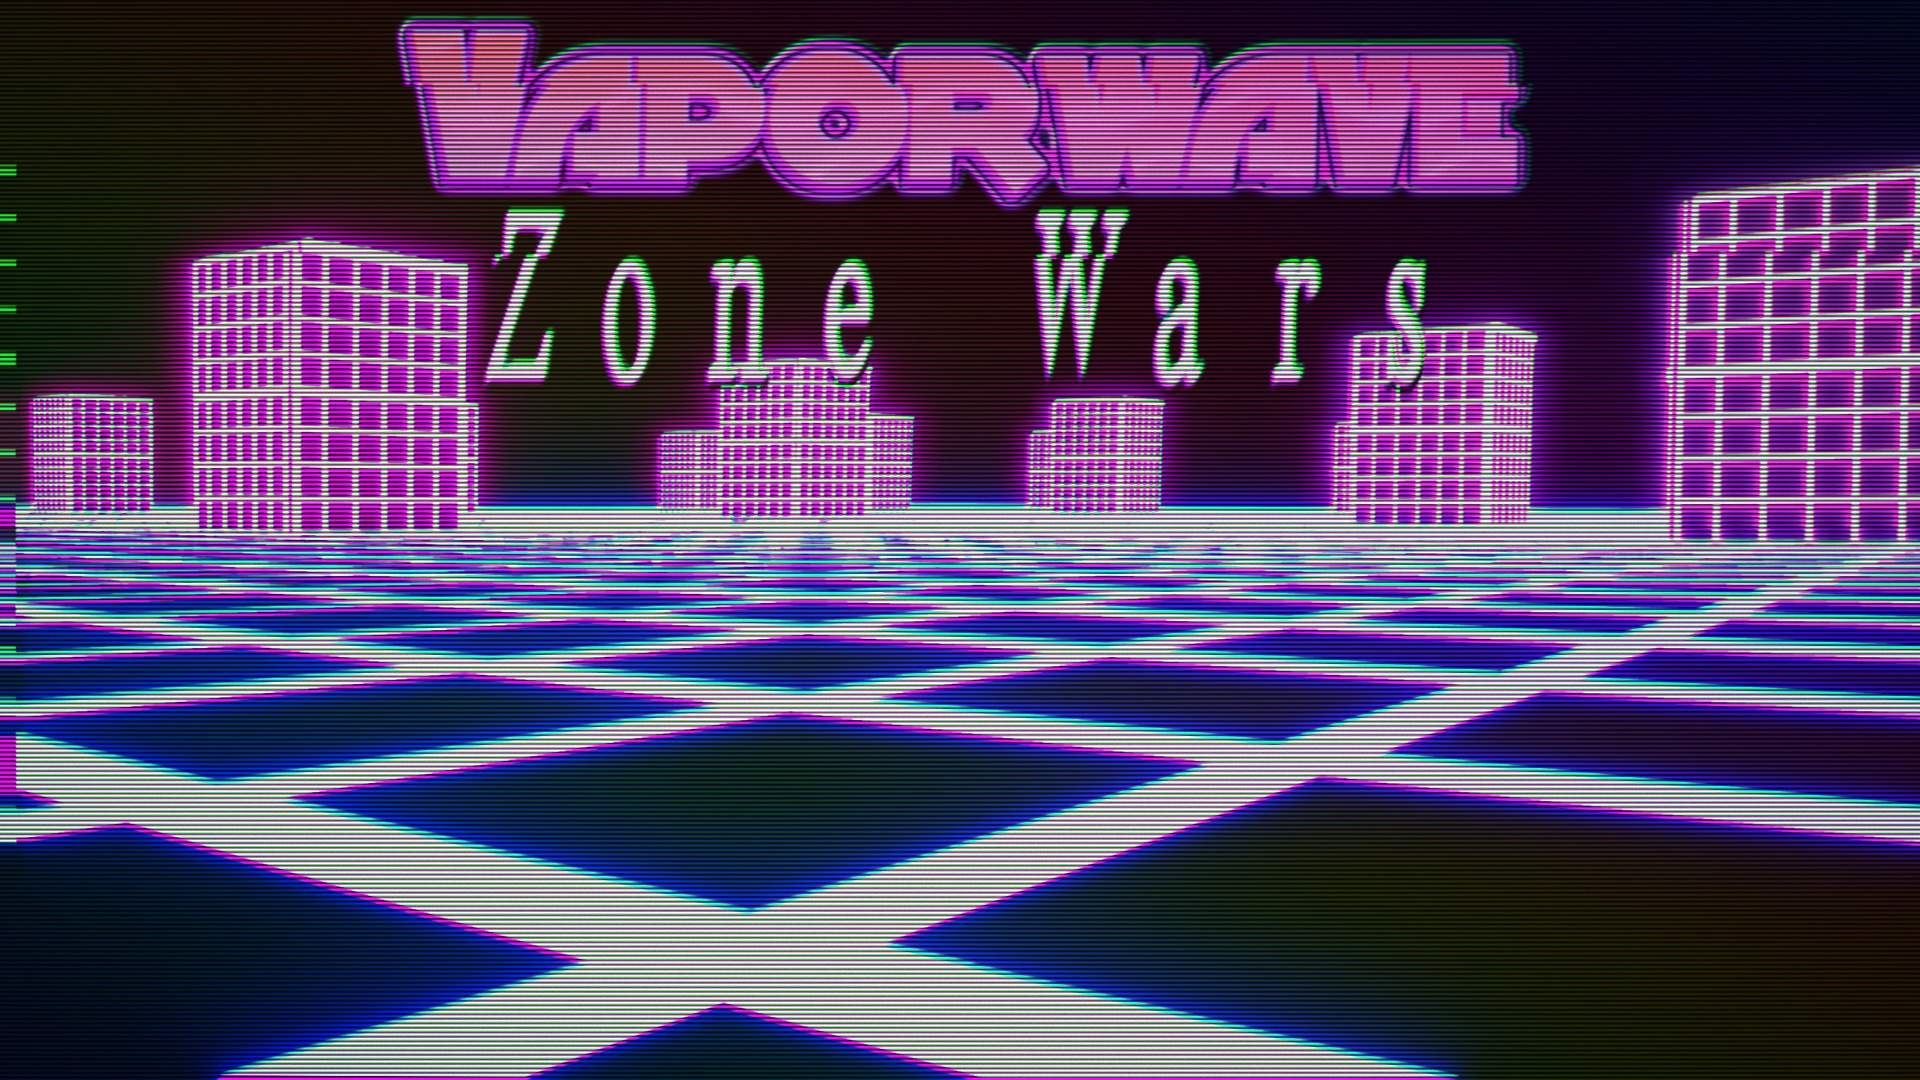 VAPORWAVE ZONE WARS